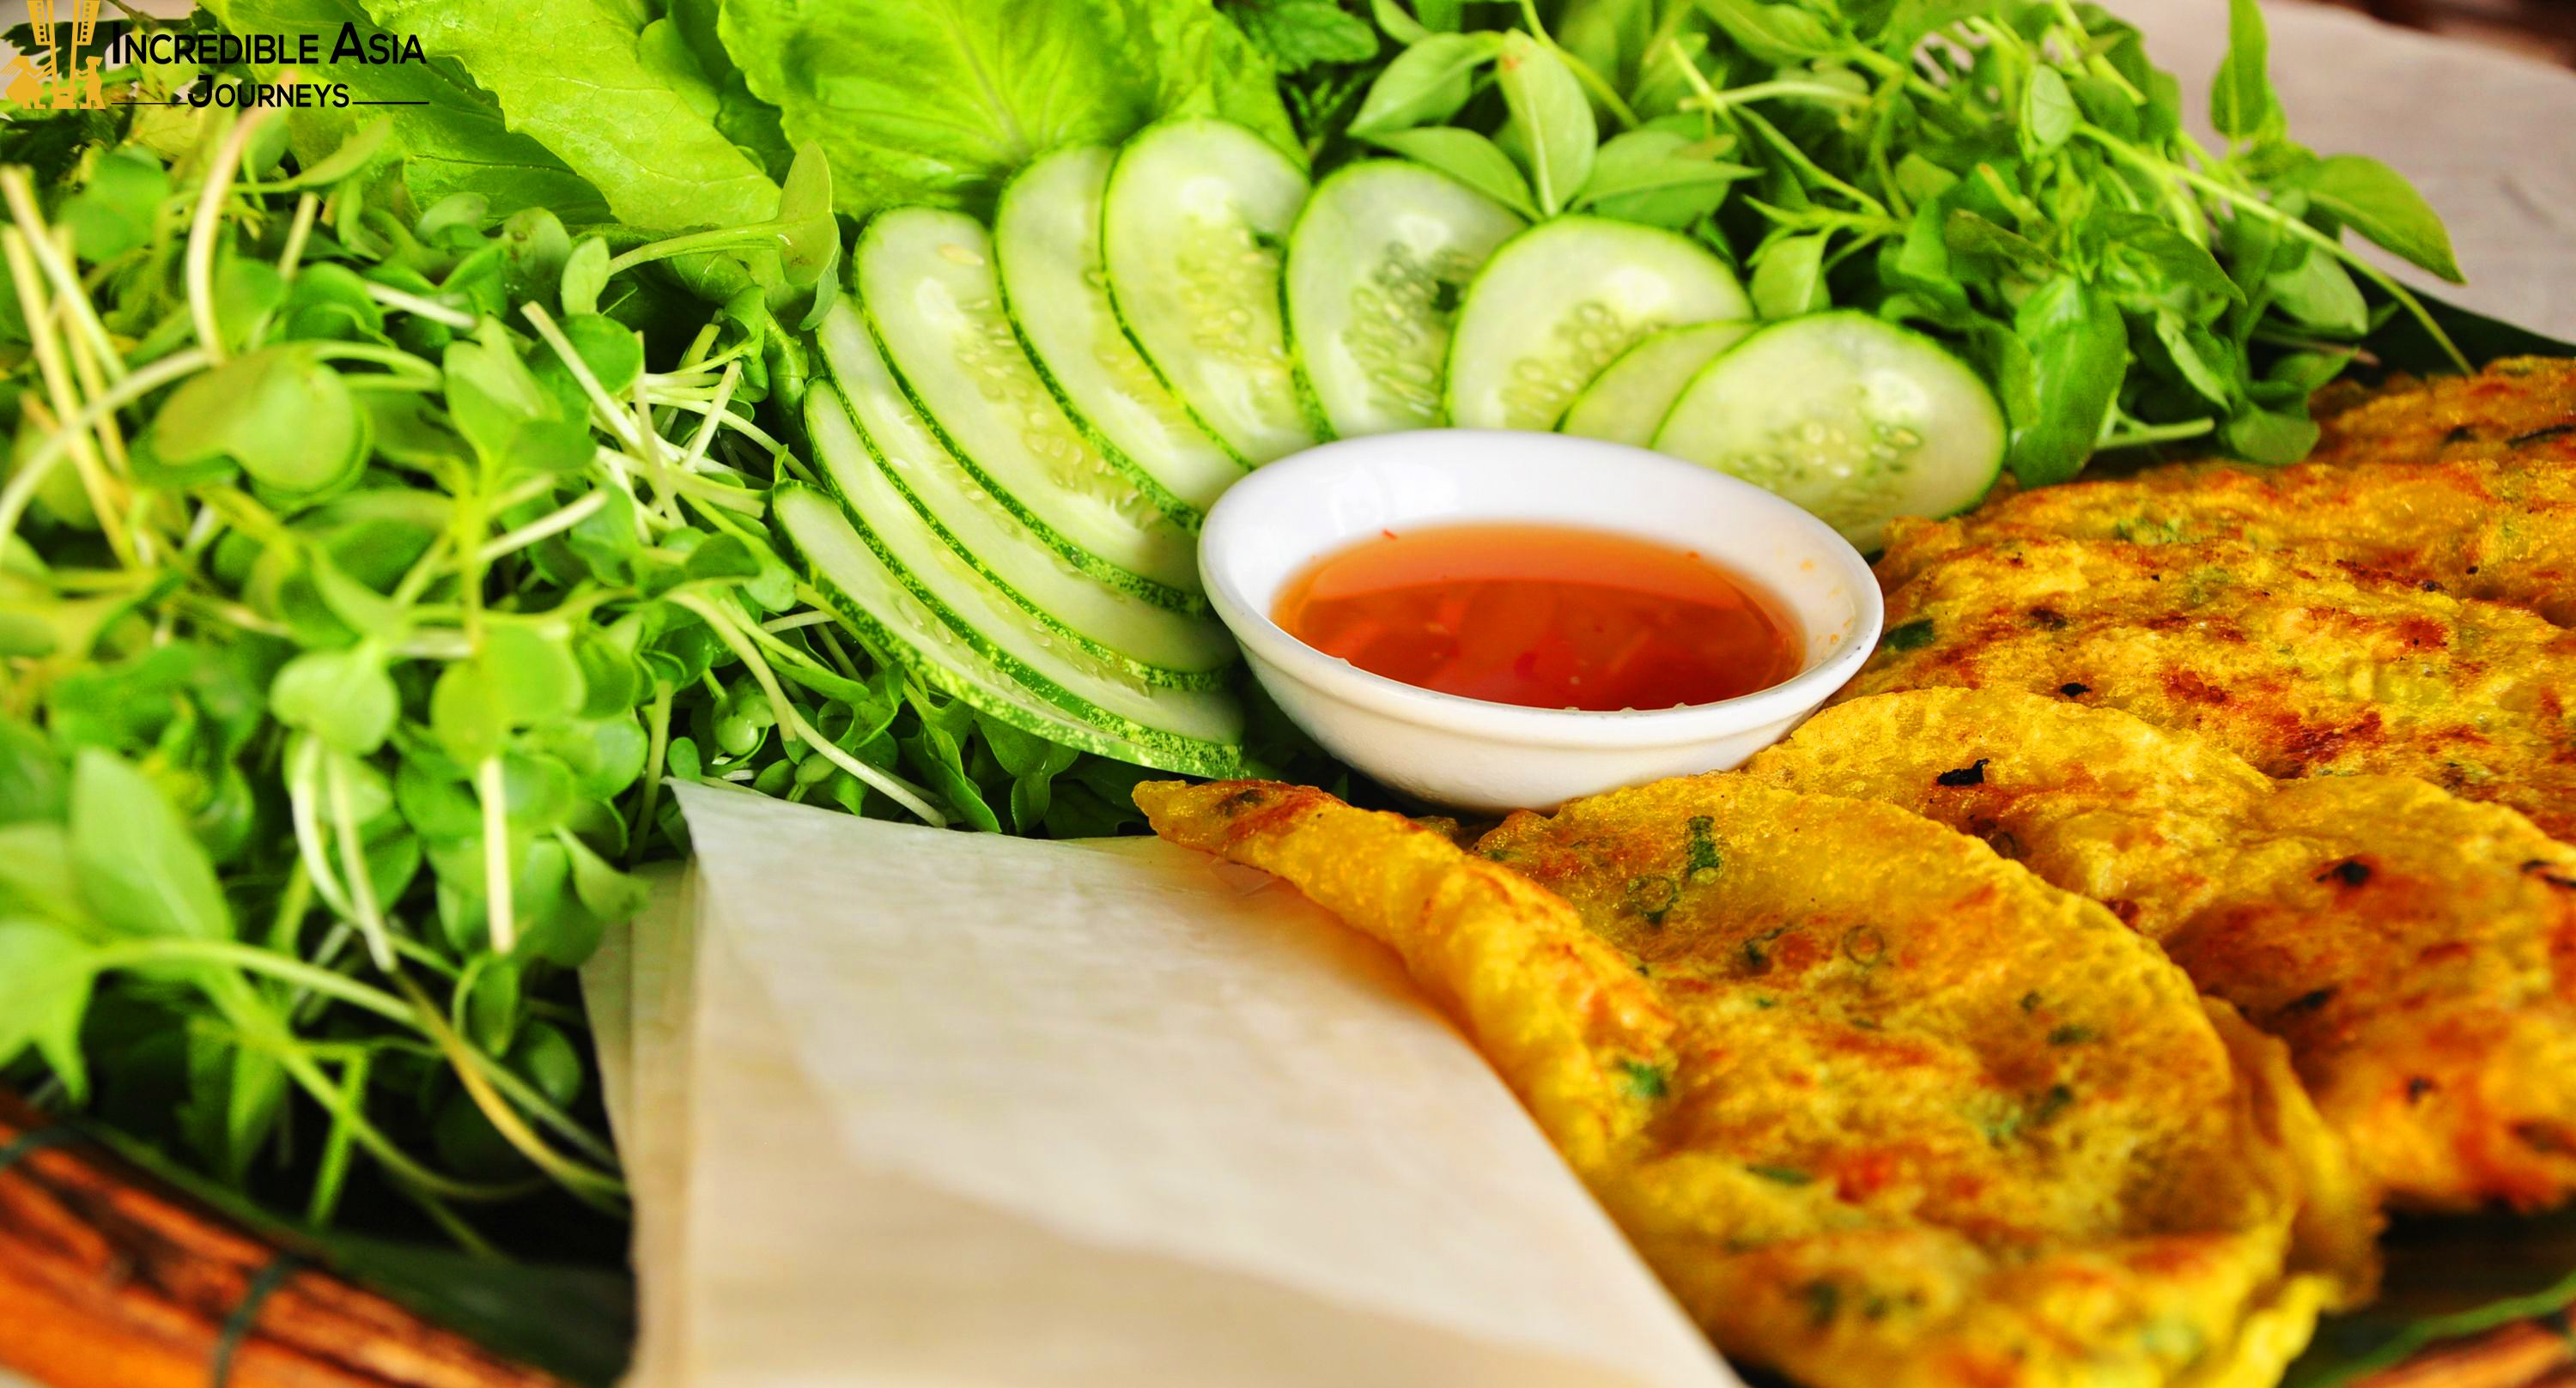 Vietnam Culinary Tour 12 Day | Incredible Asia Journeys